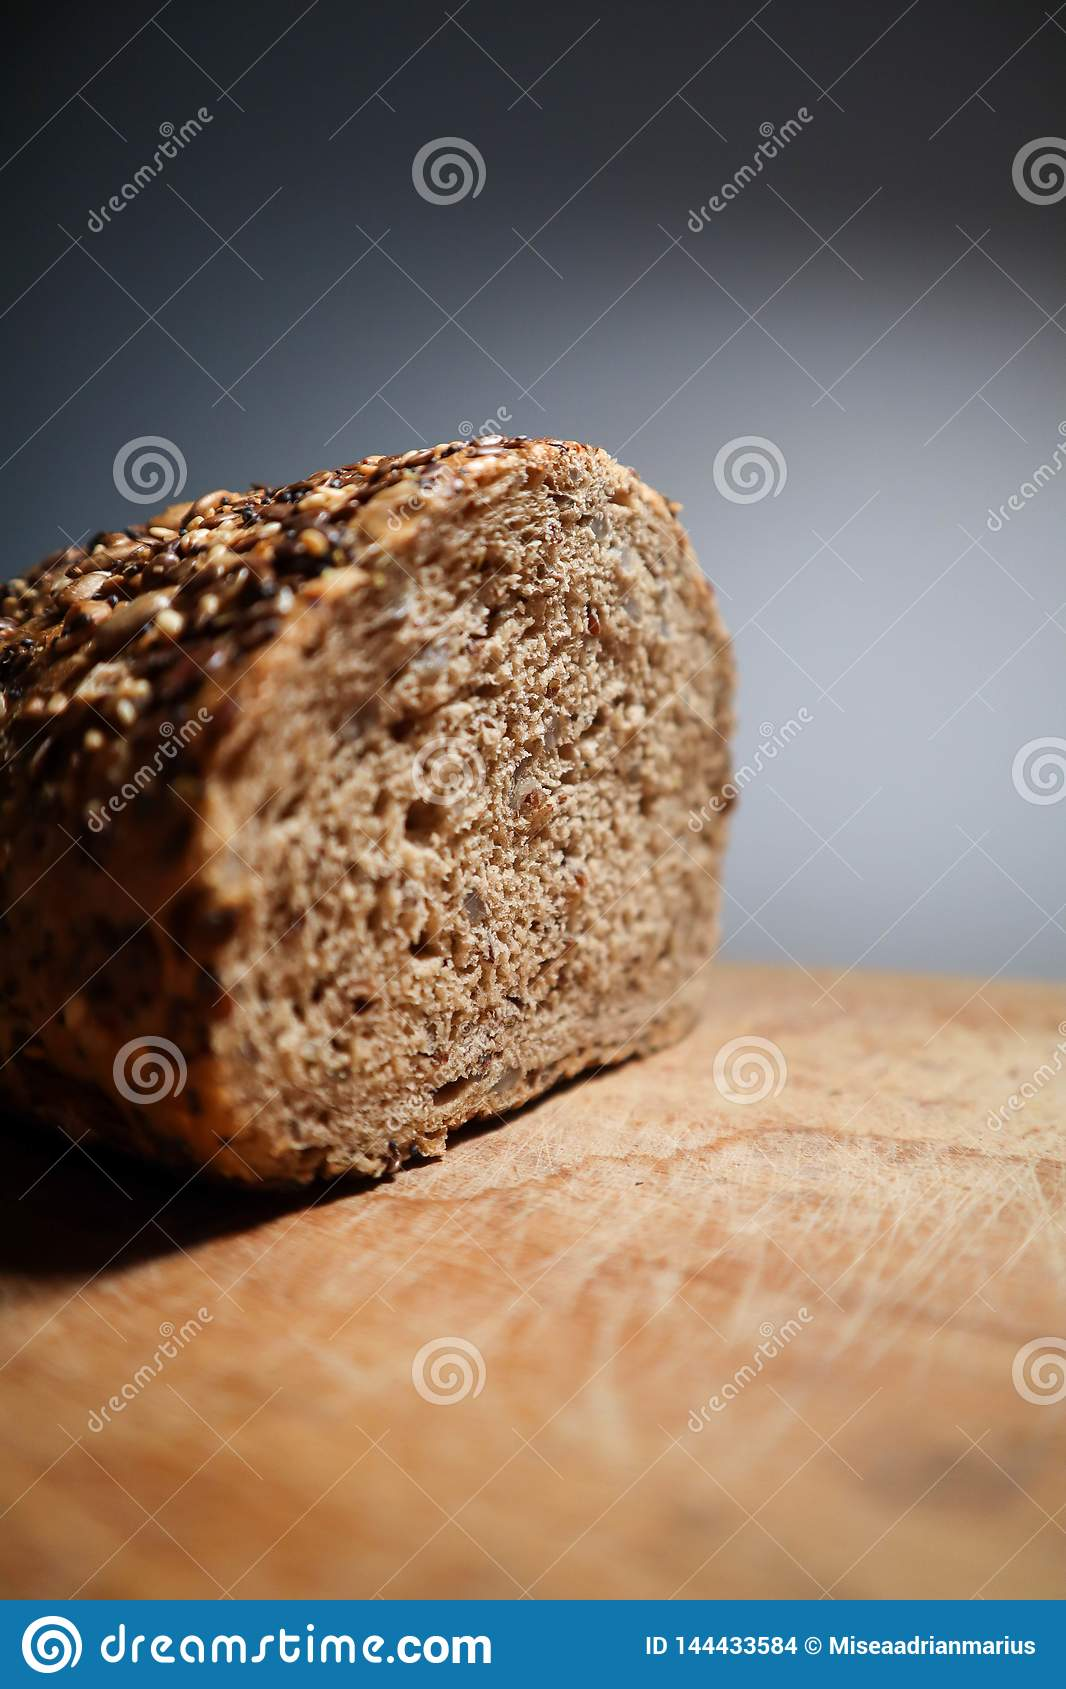 Champions bread with lots of seeds